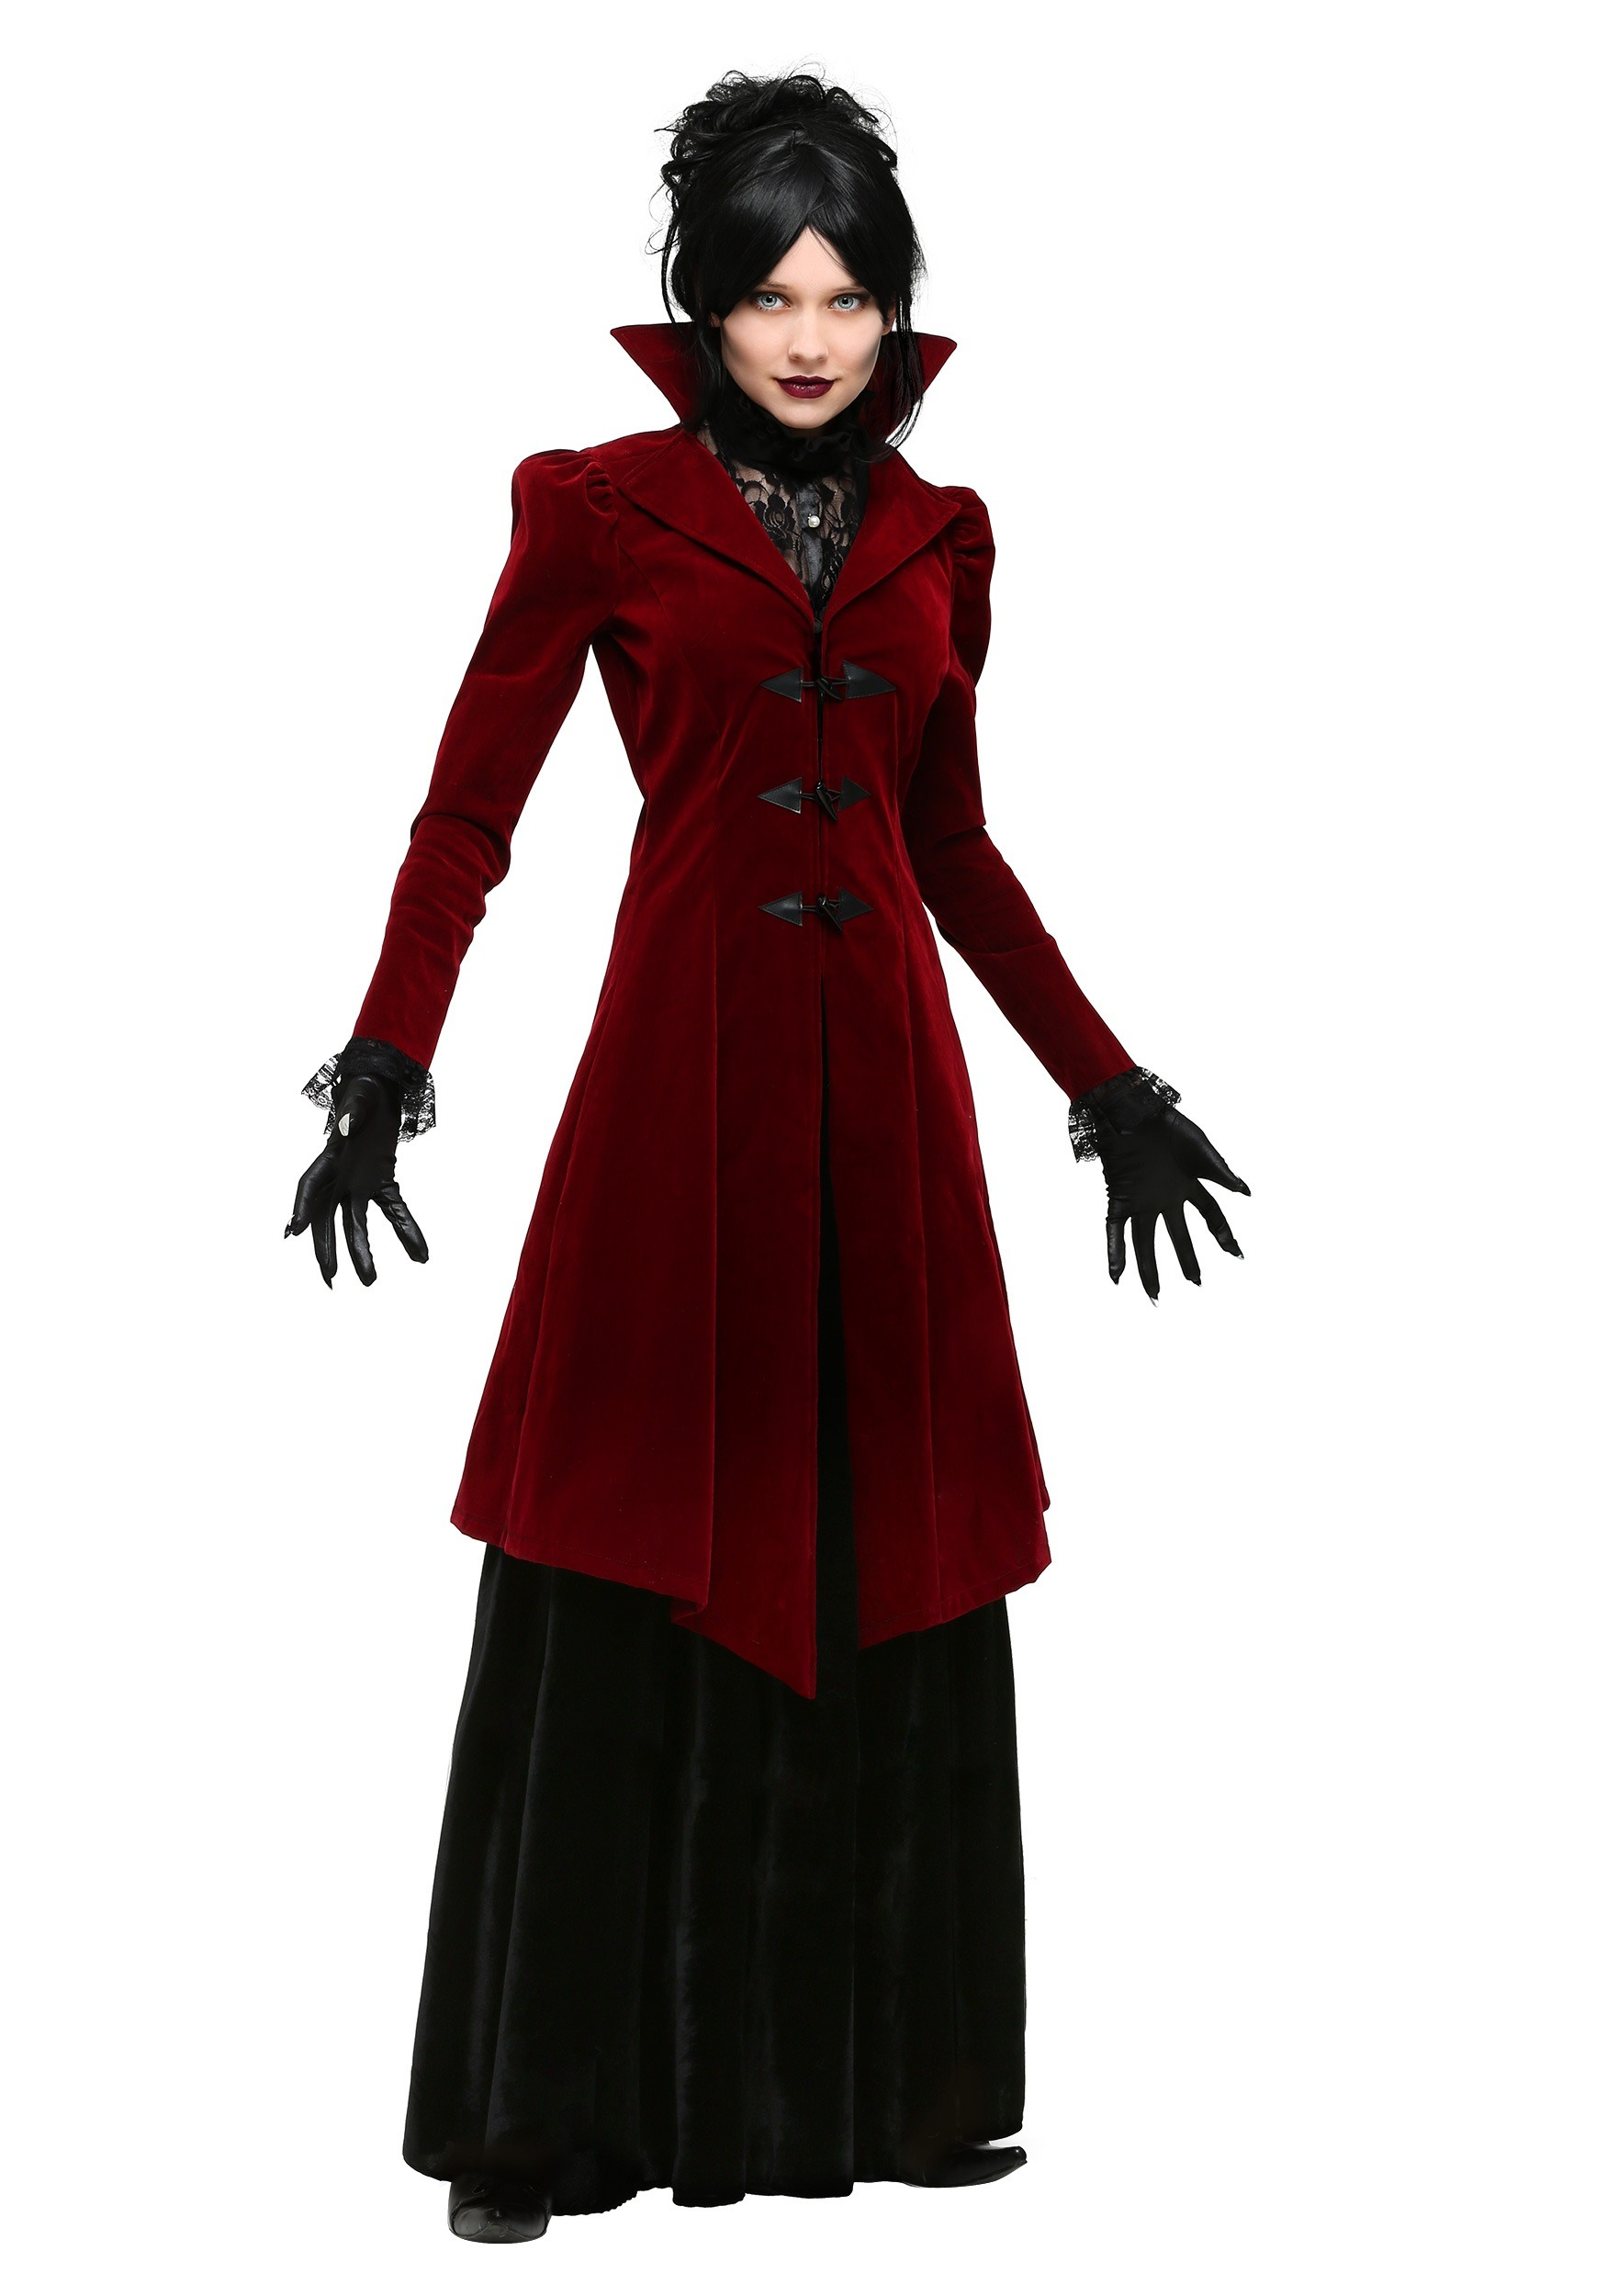 Women's Plus Size Delightfully Dreadful Vampiress Costume